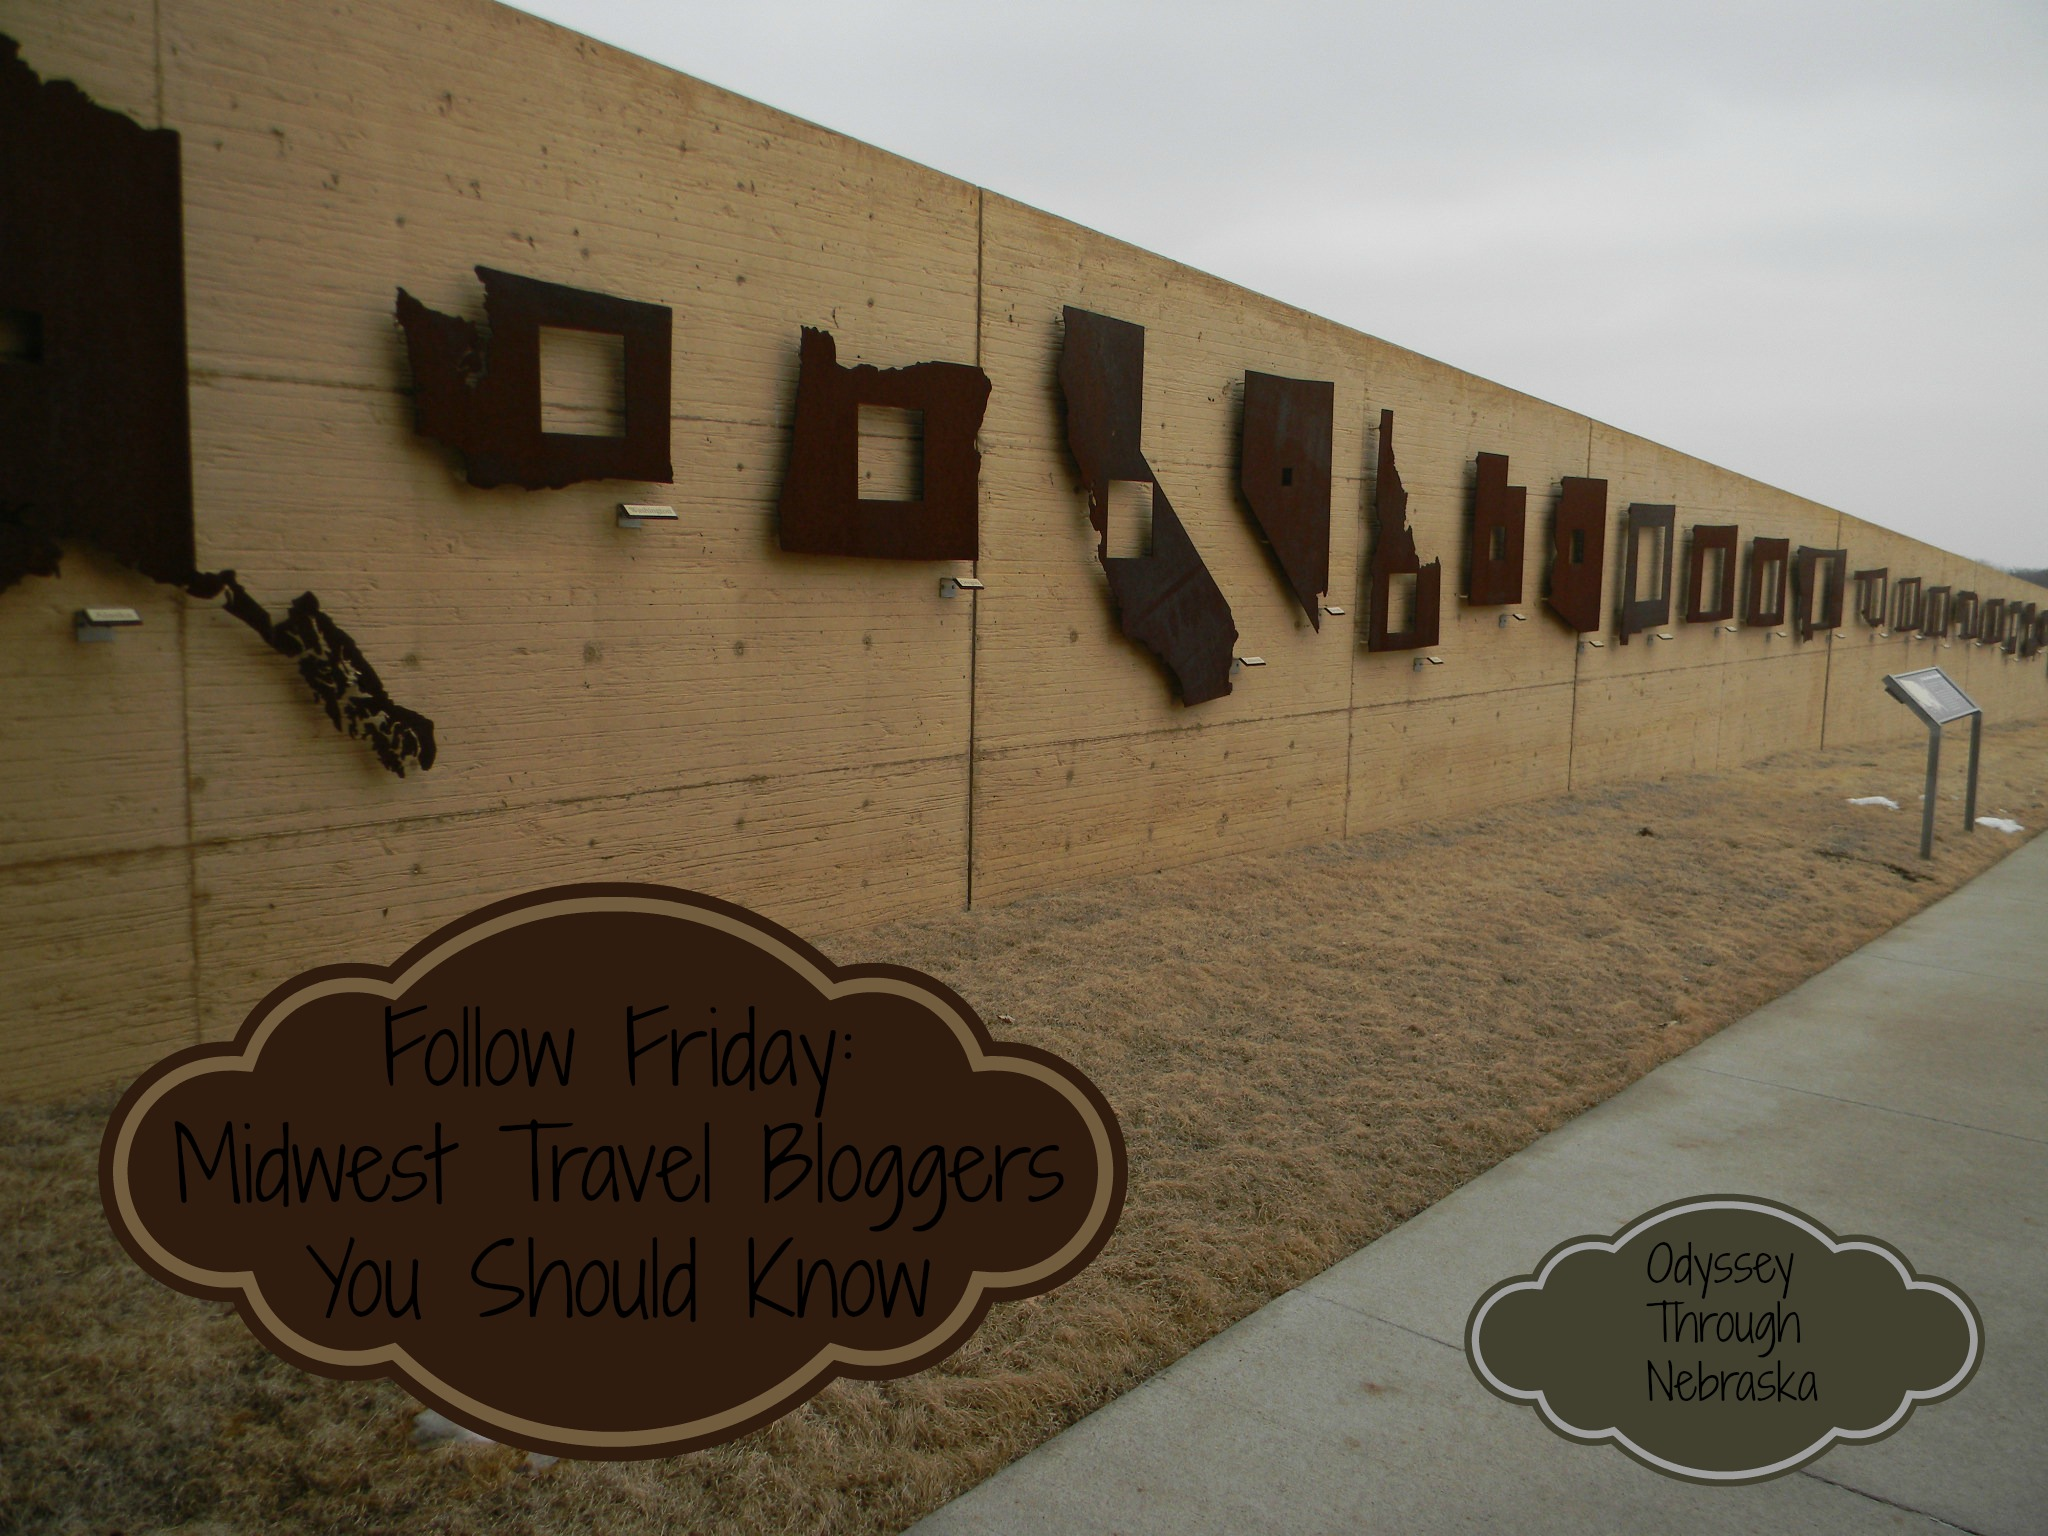 Midwest Travel Bloggers Improve the Midwest Travel Experience